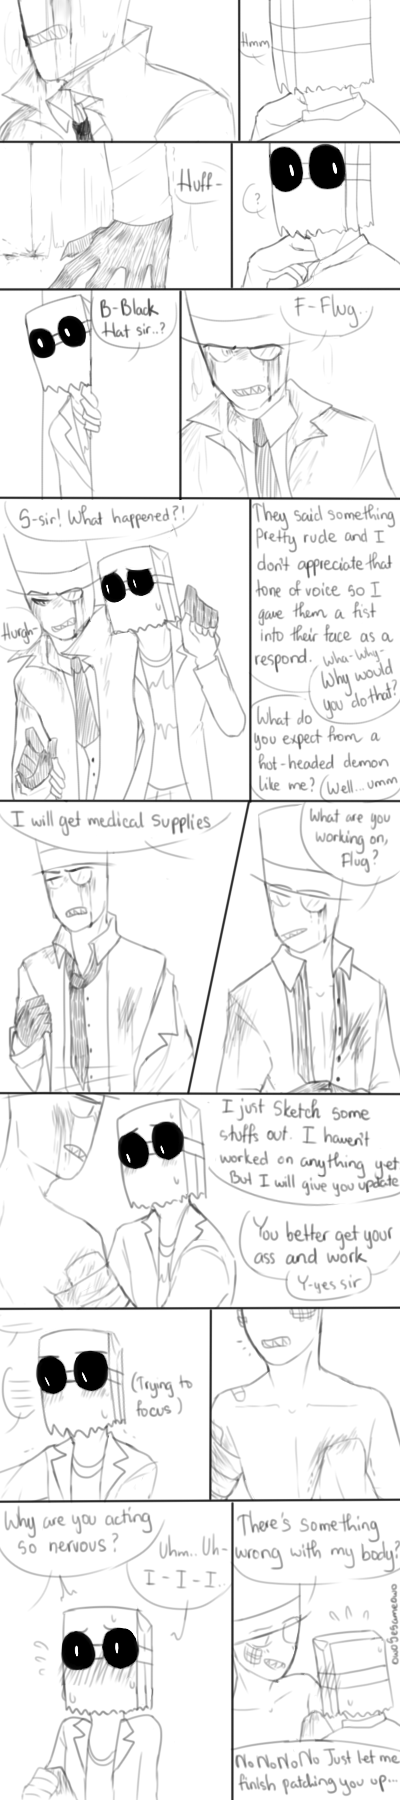 PaperHat Request 8]: Patch Up by owoSesameowo | Villainous